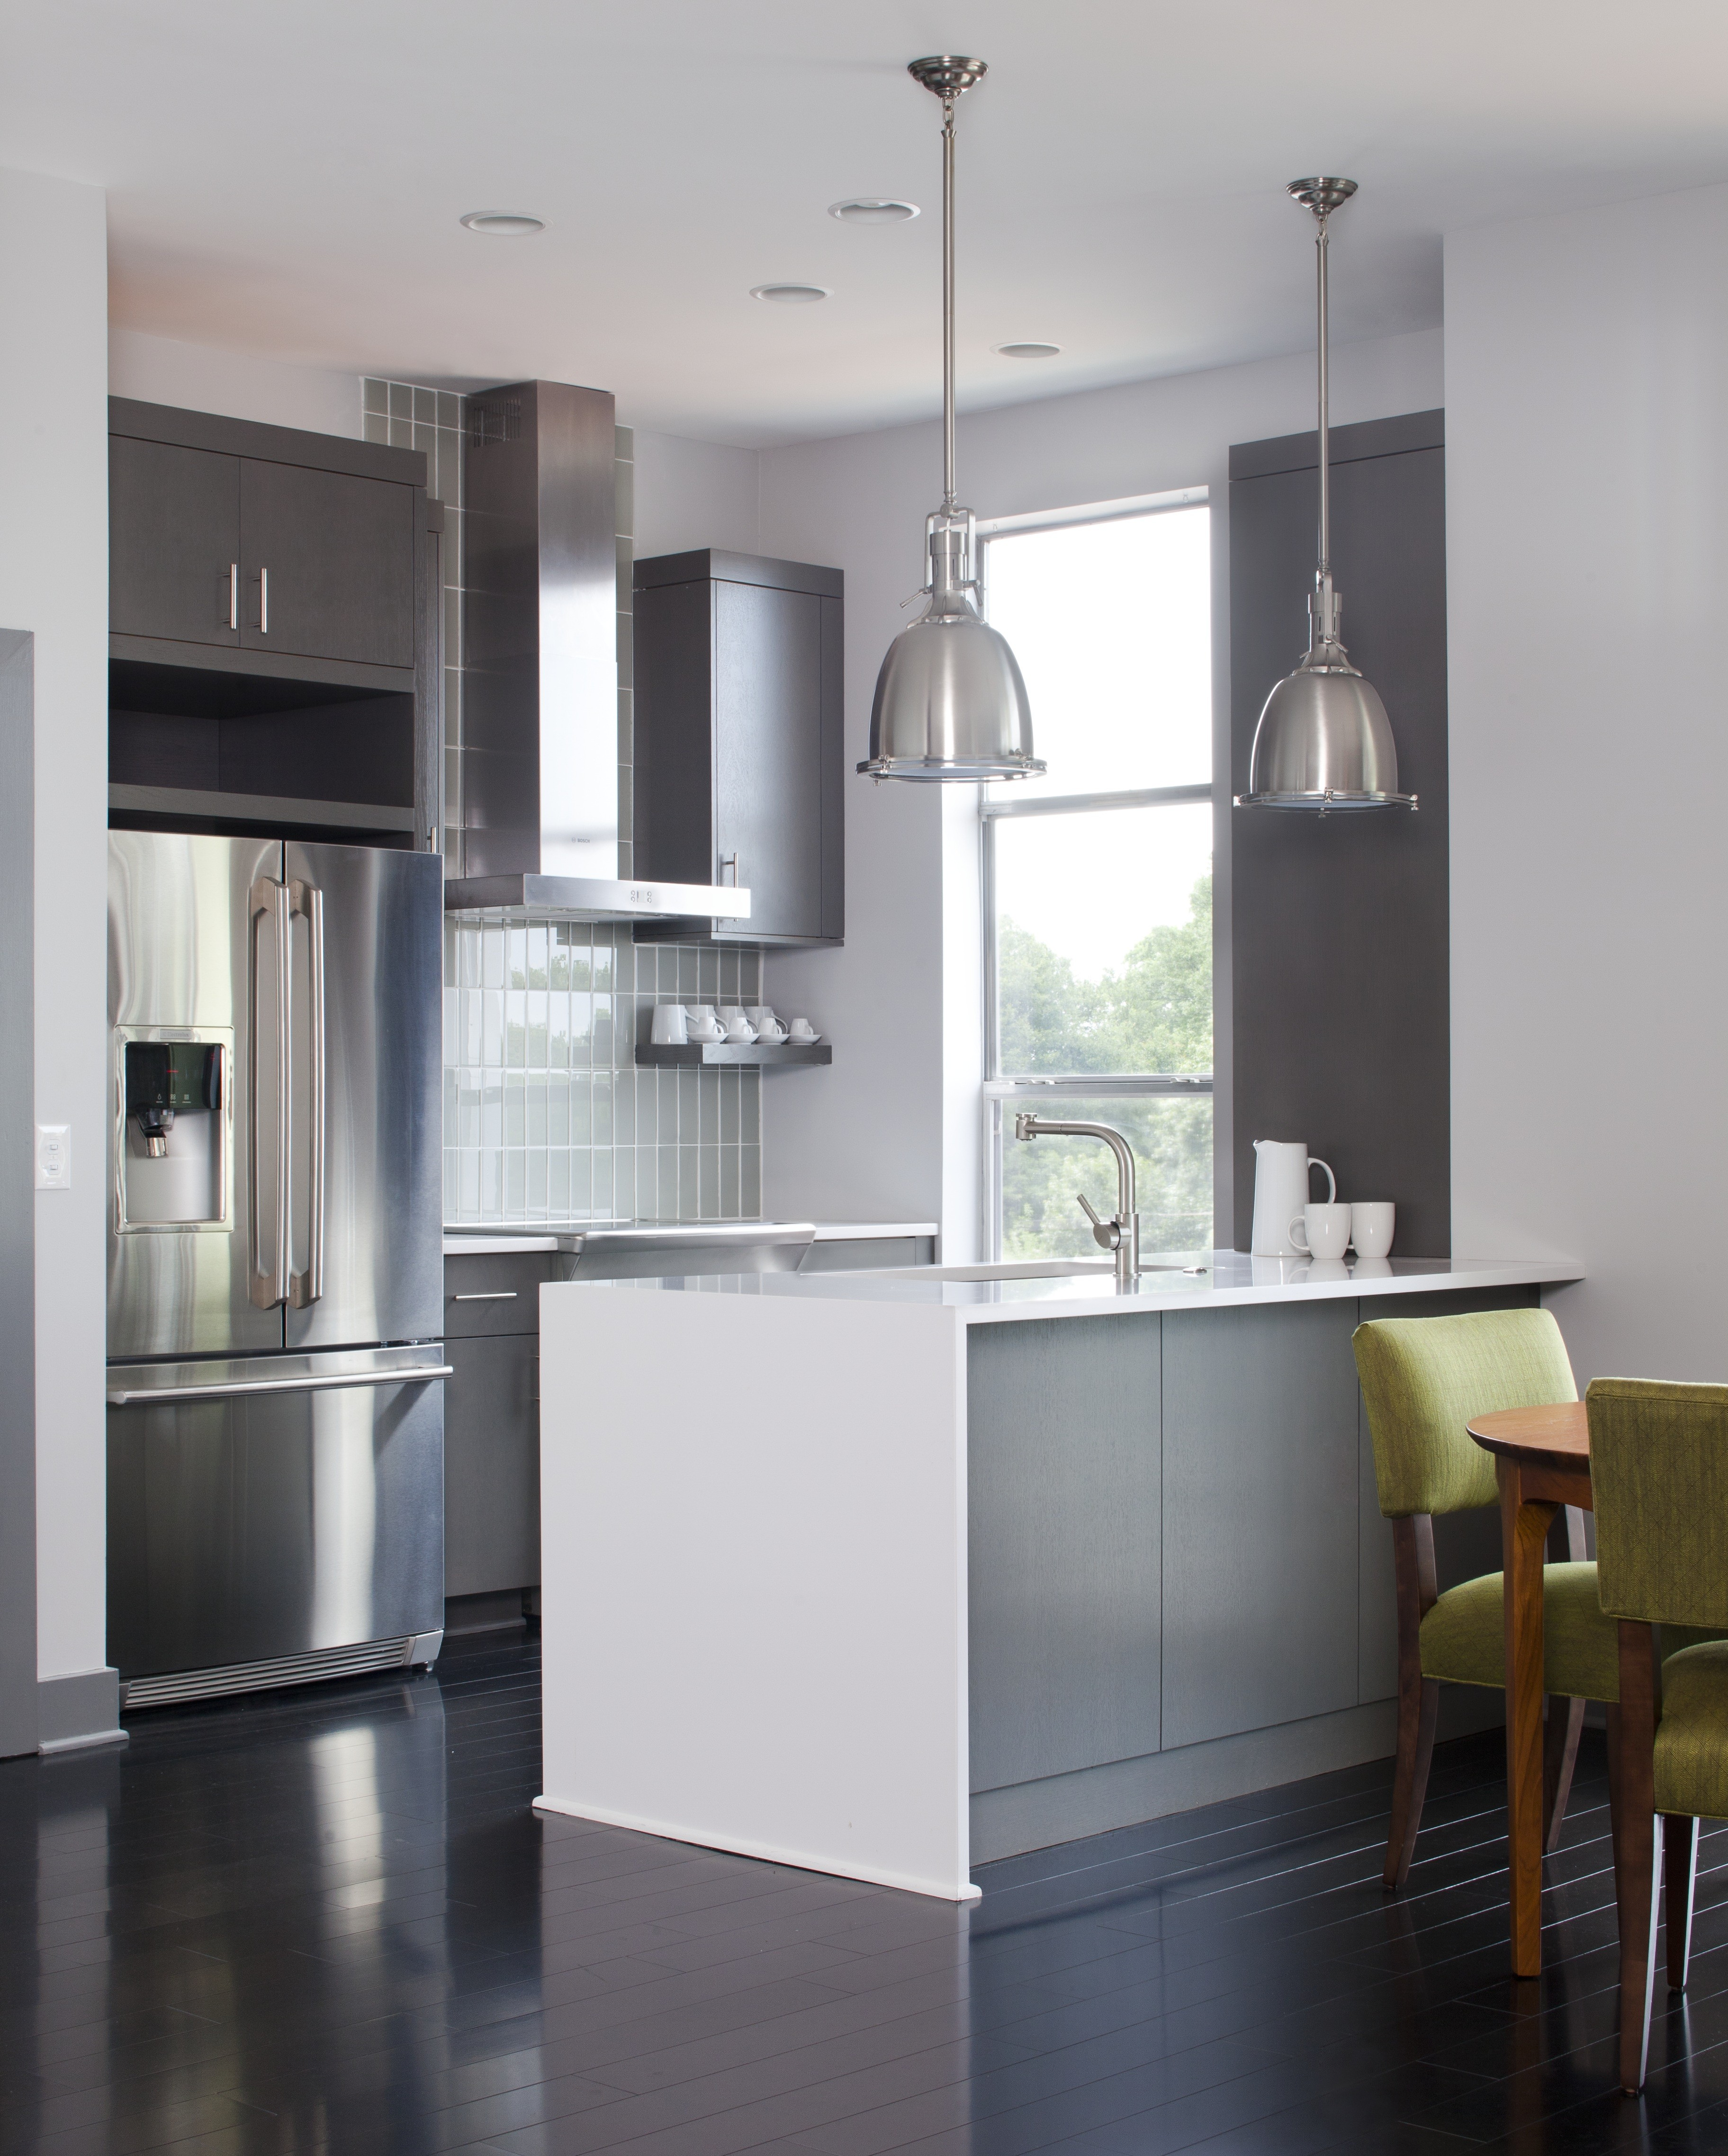 Renew Kitchen Cabinets: 11 Gorgeous Kitchens For People Who Love To Cook